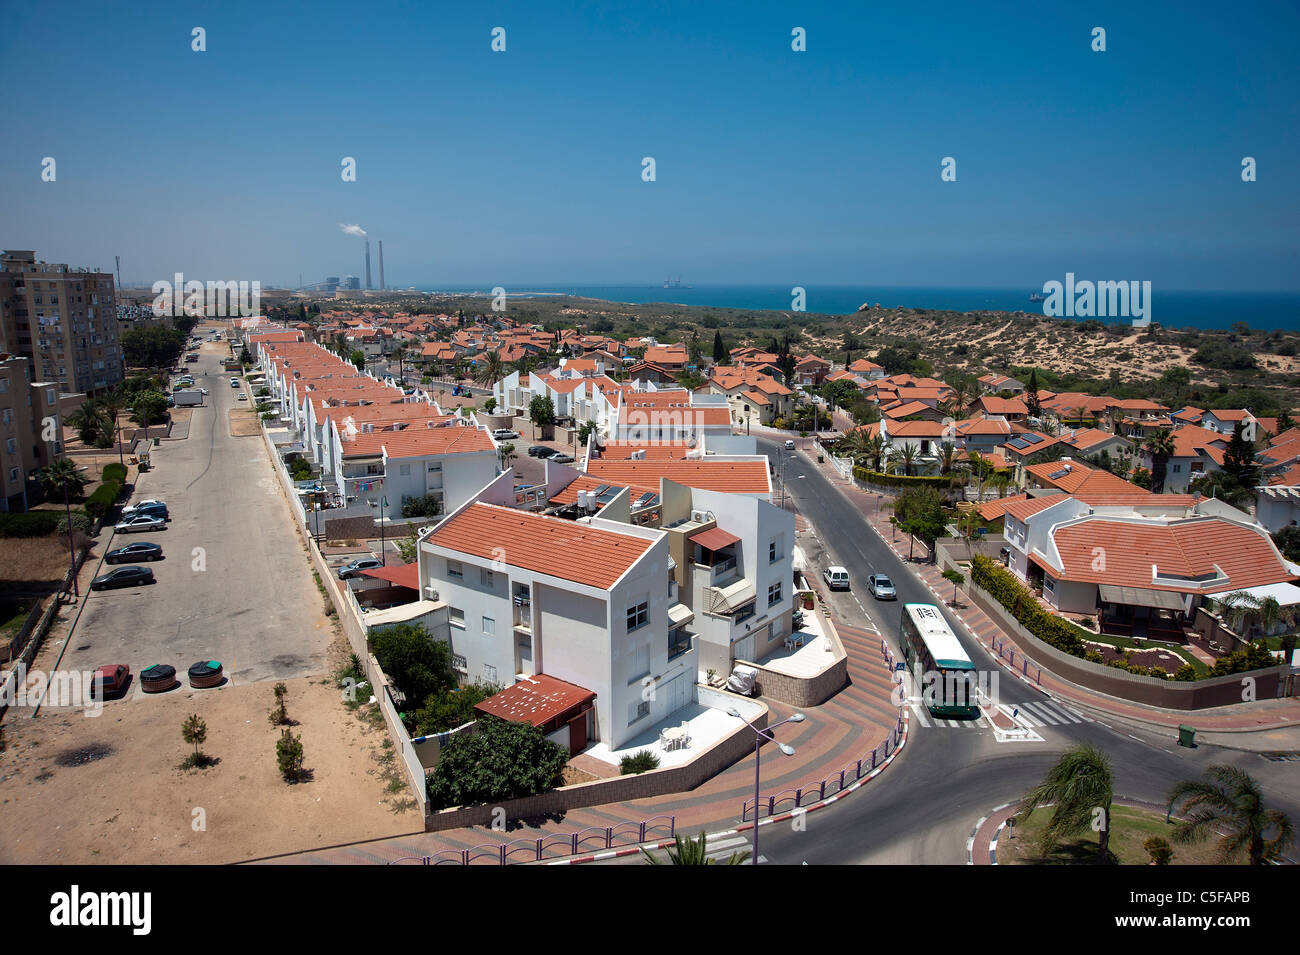 Elevated view of Ashkelon, Israel The power plant in the background - Stock Image